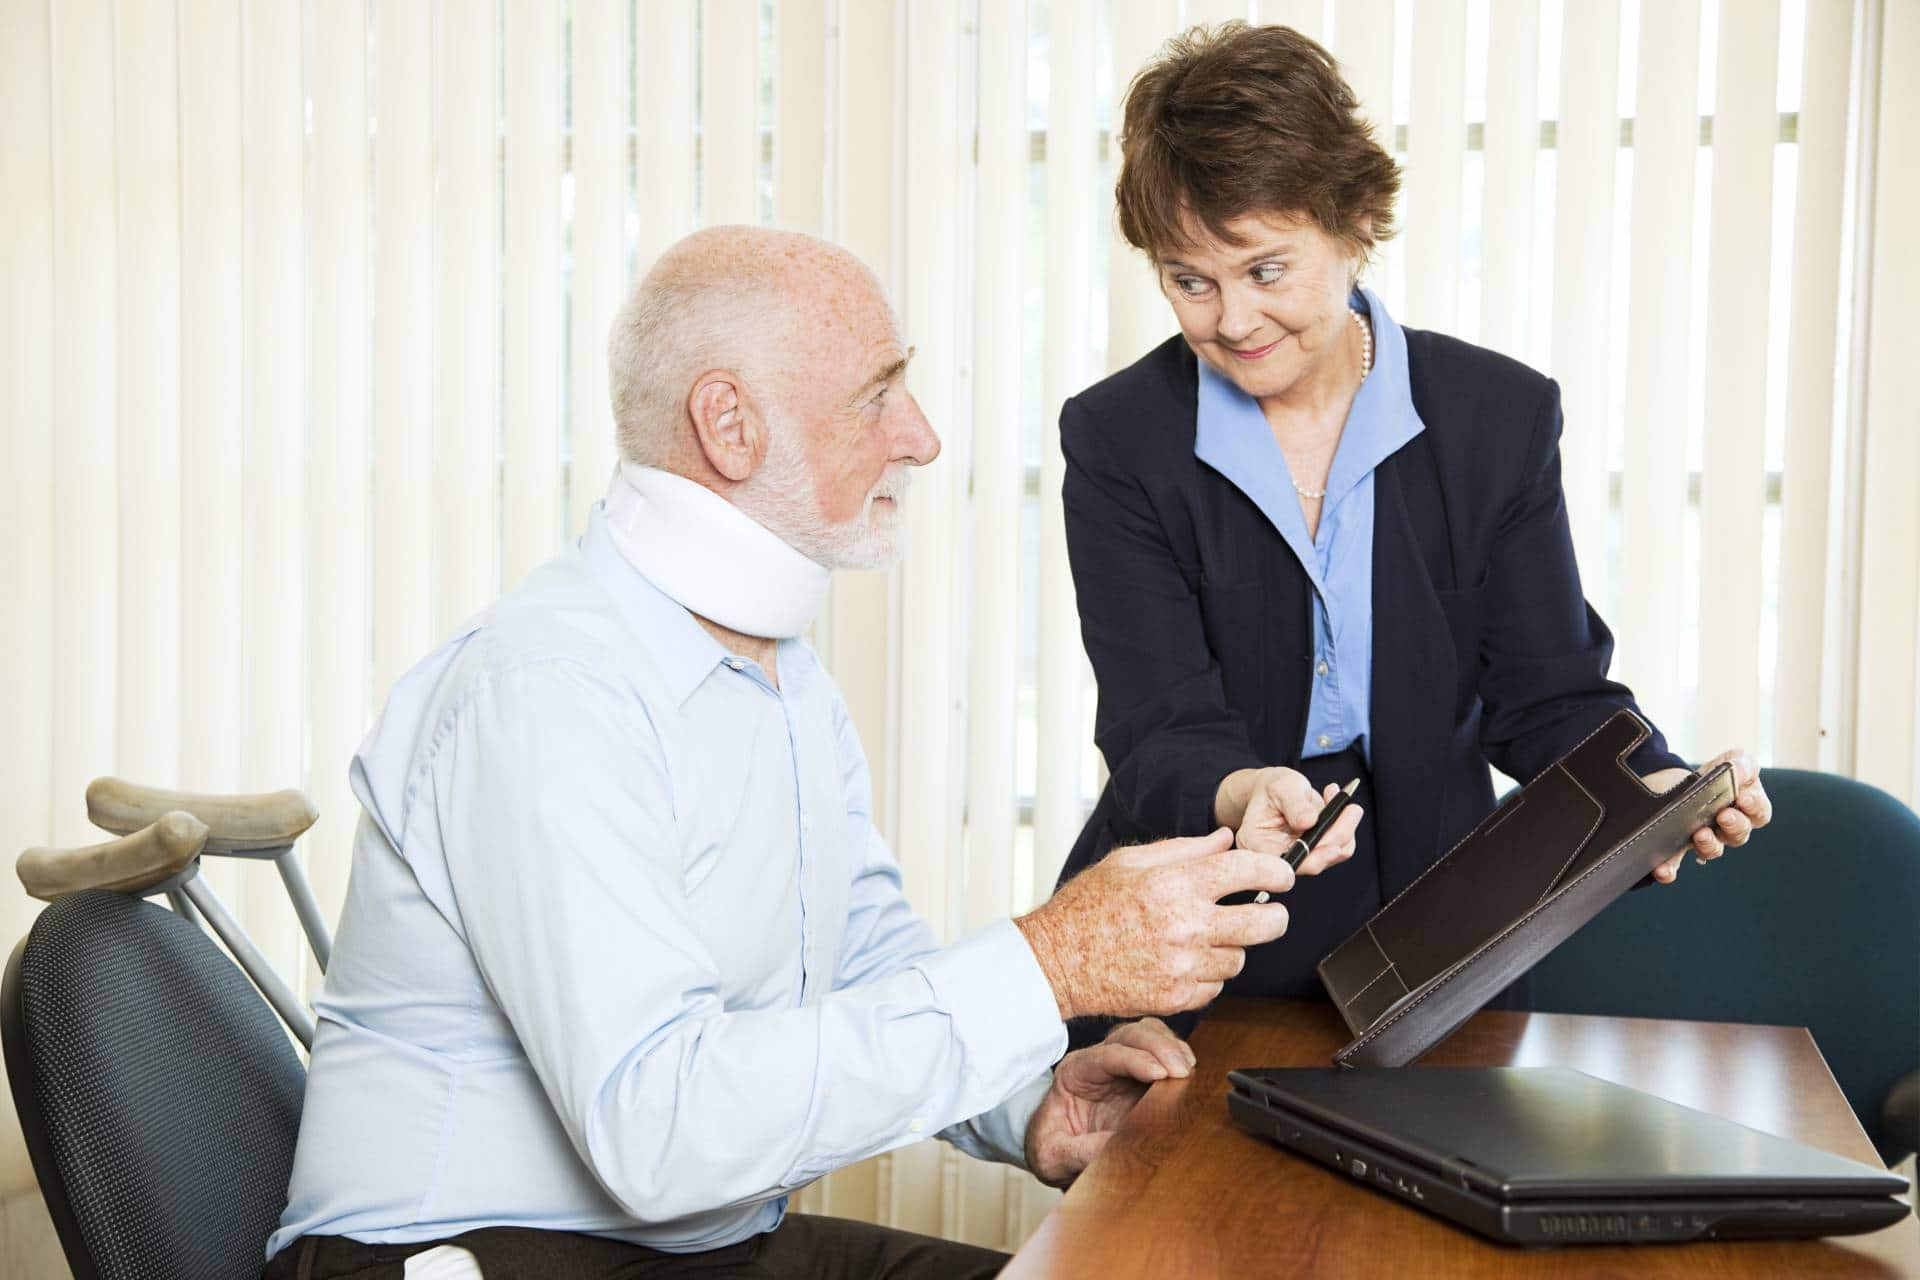 Schedule a free consultation with our personal injury lawyers at the Angell Law Firm in Panthersville, Ga.